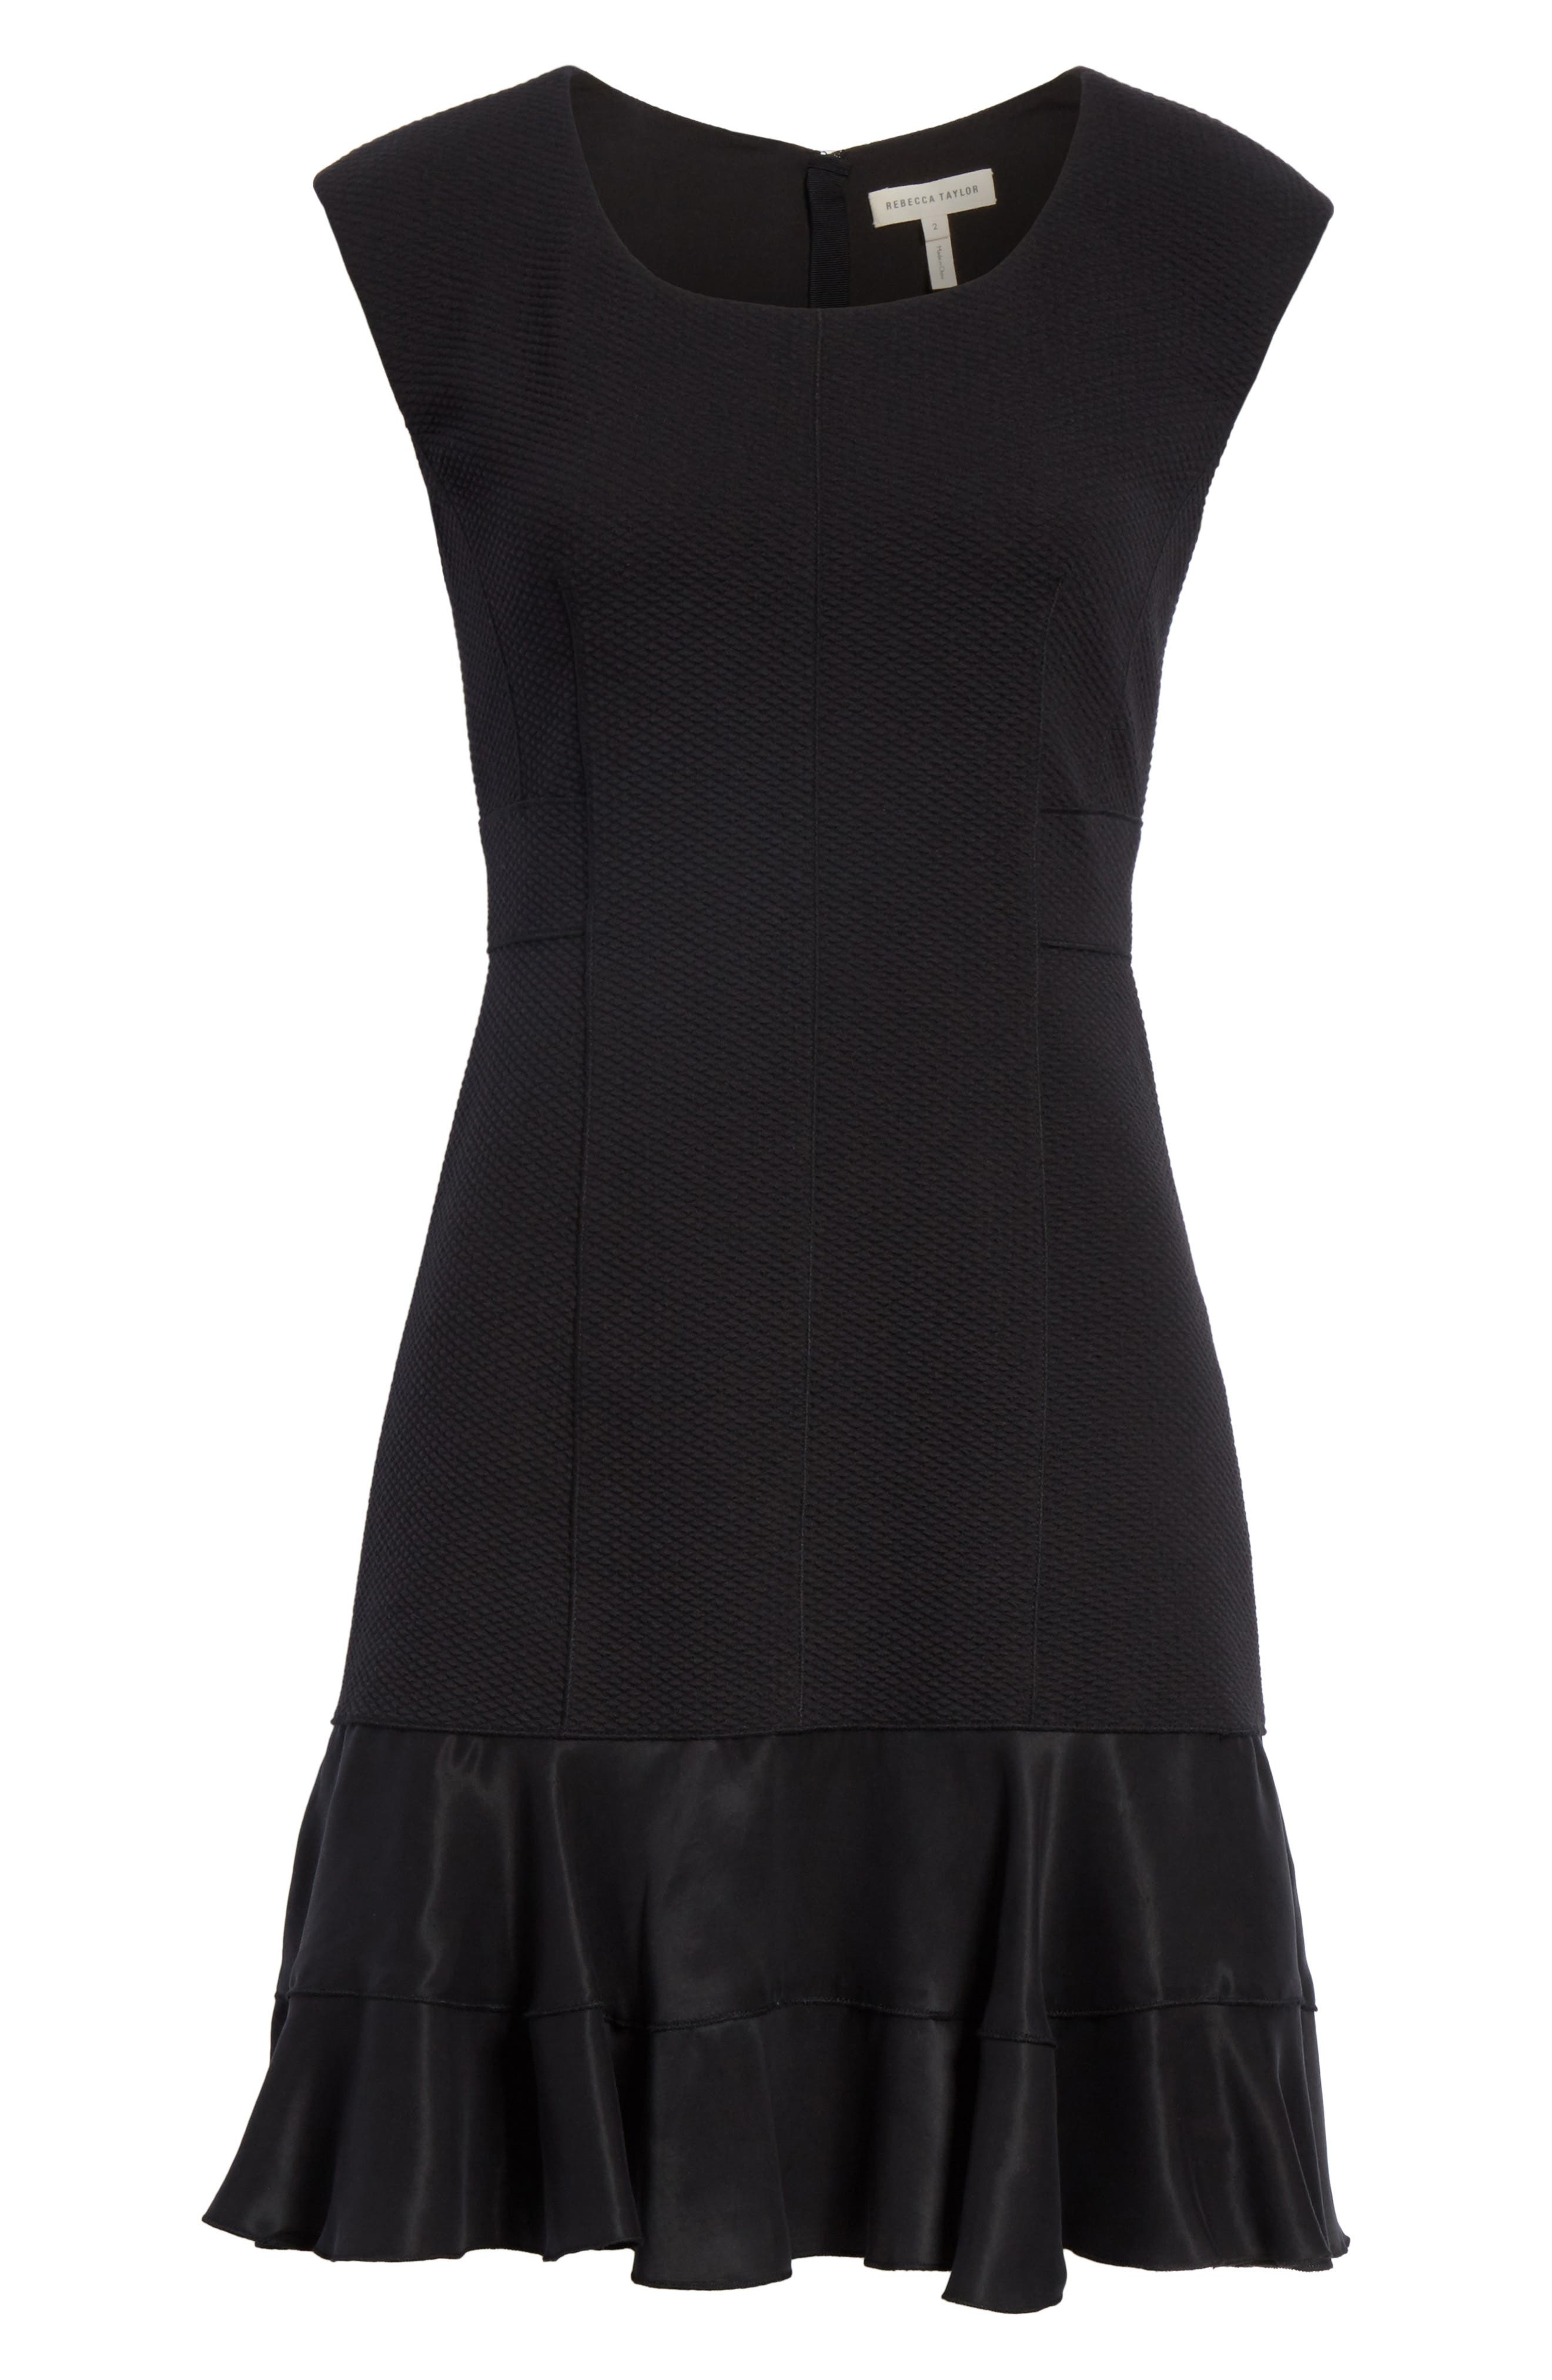 Terri Dress,                             Alternate thumbnail 7, color,                             BLACK